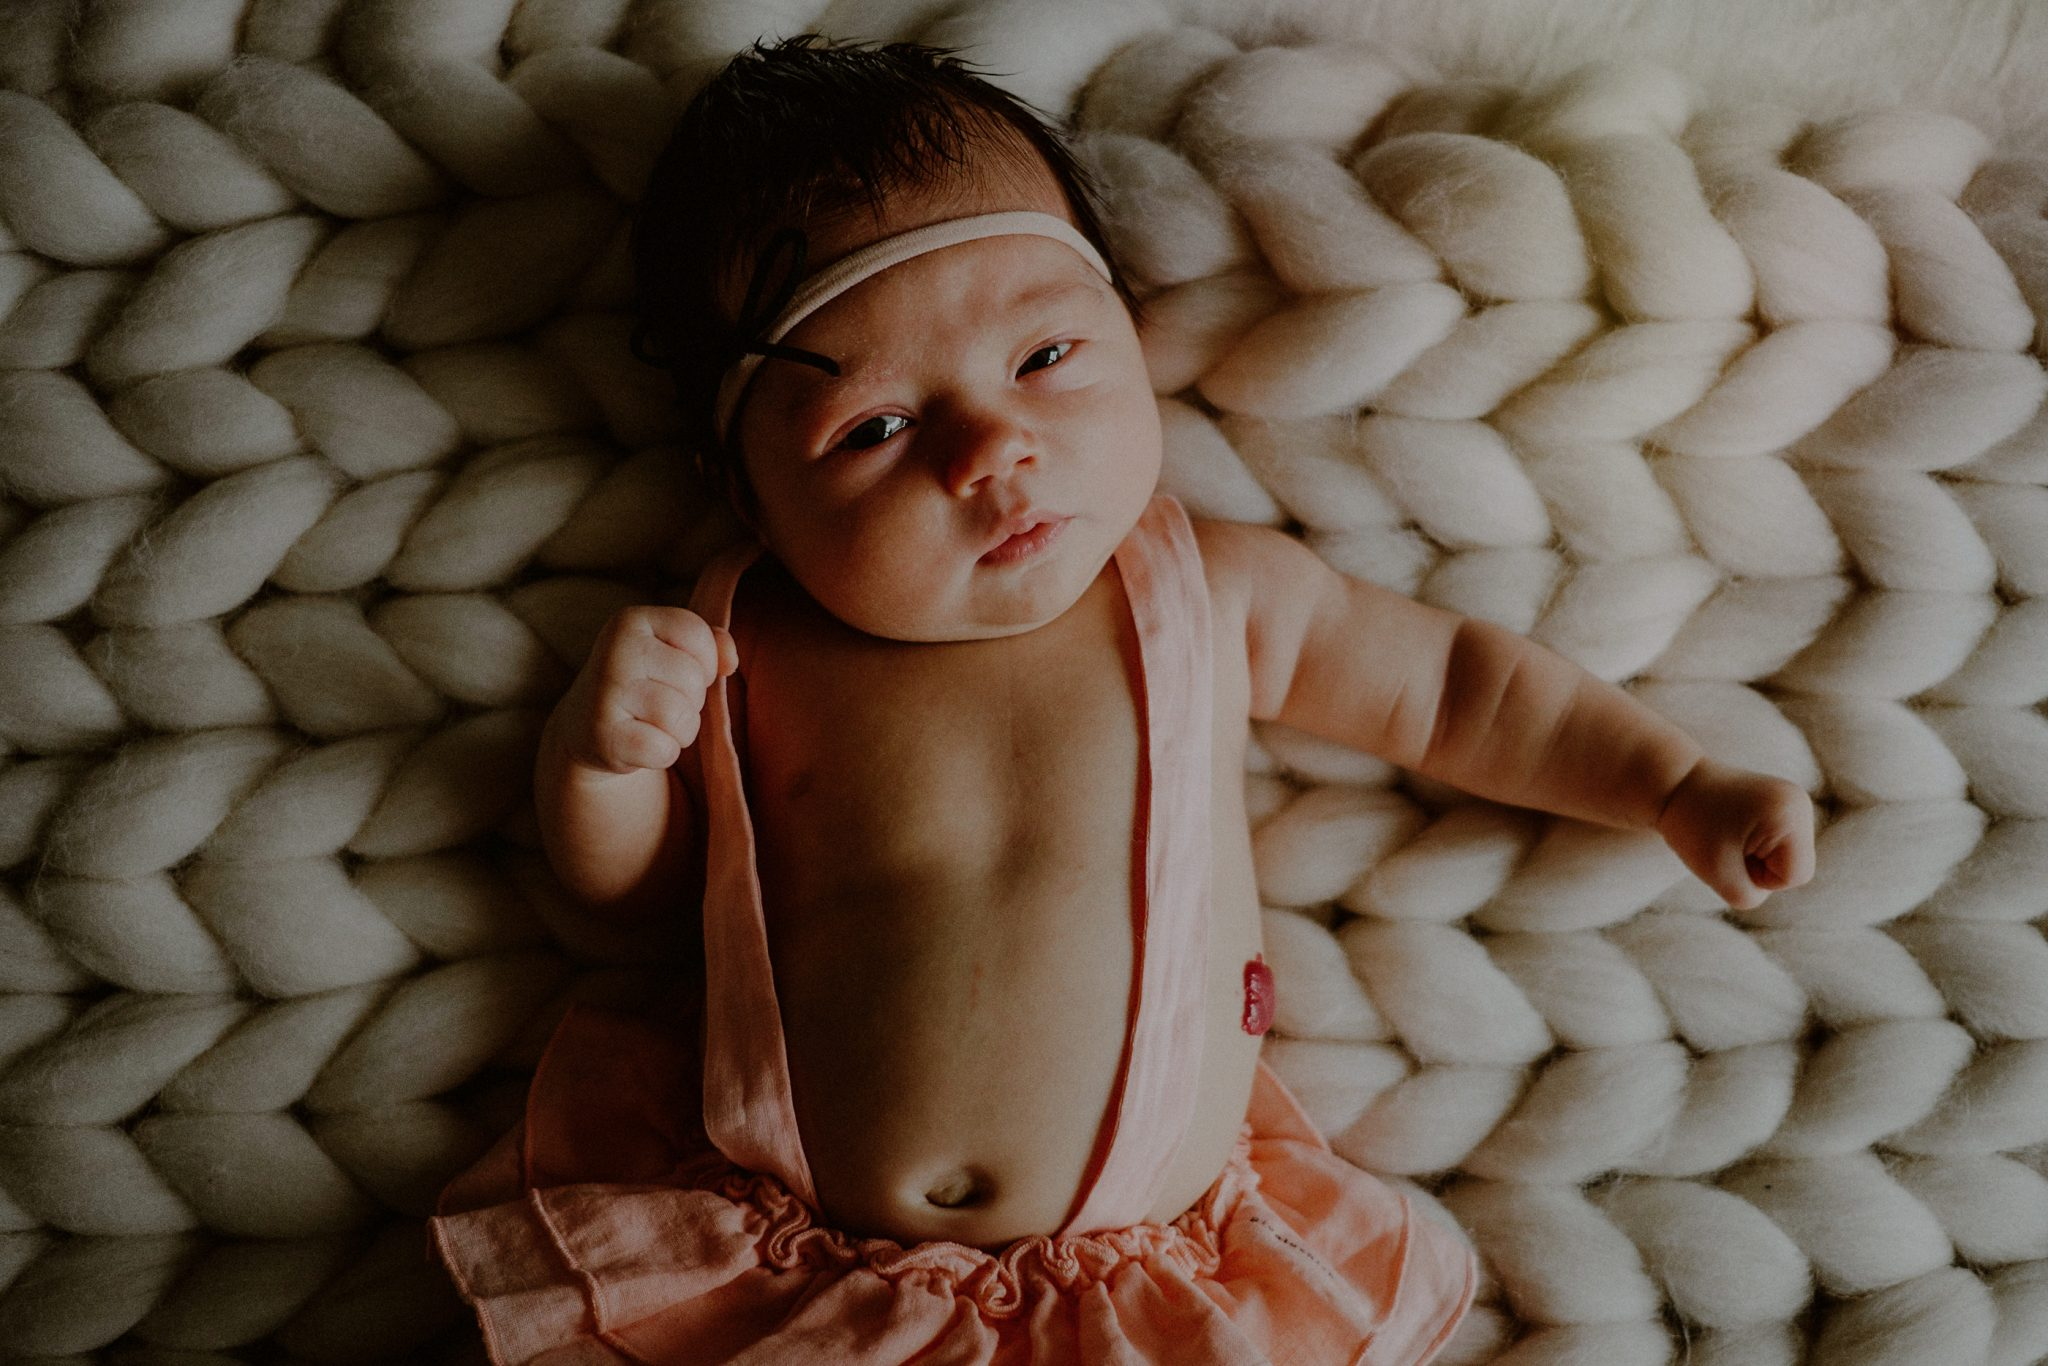 newborn baby photo with baby looking directly at camera